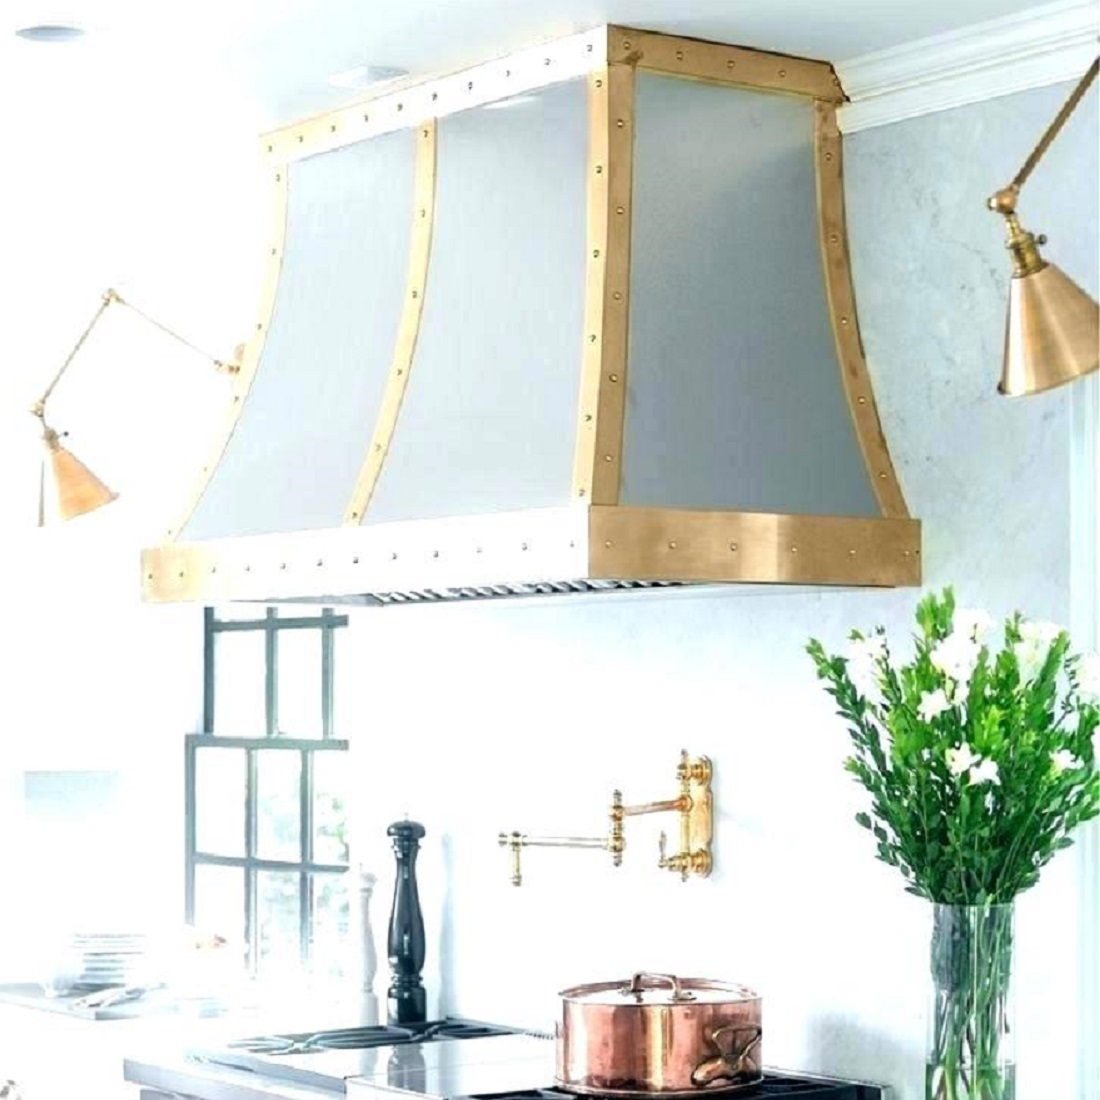 wall mount brass range hood in a kitchen